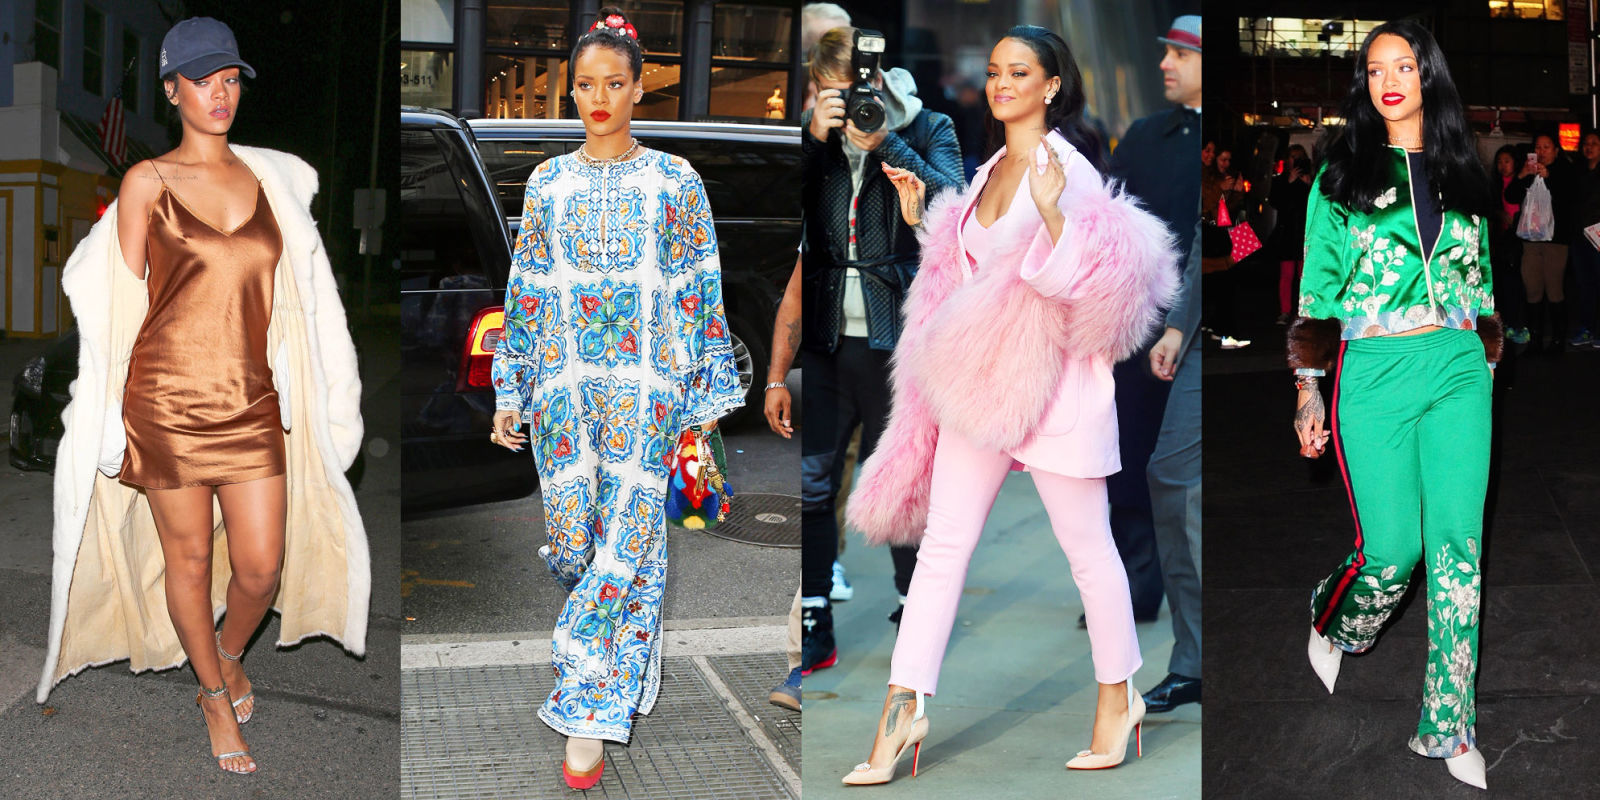 Rihanna In Sheer Raincoat Like Mini Dress In Santa Monica Rihanna Fashion And Style Photos